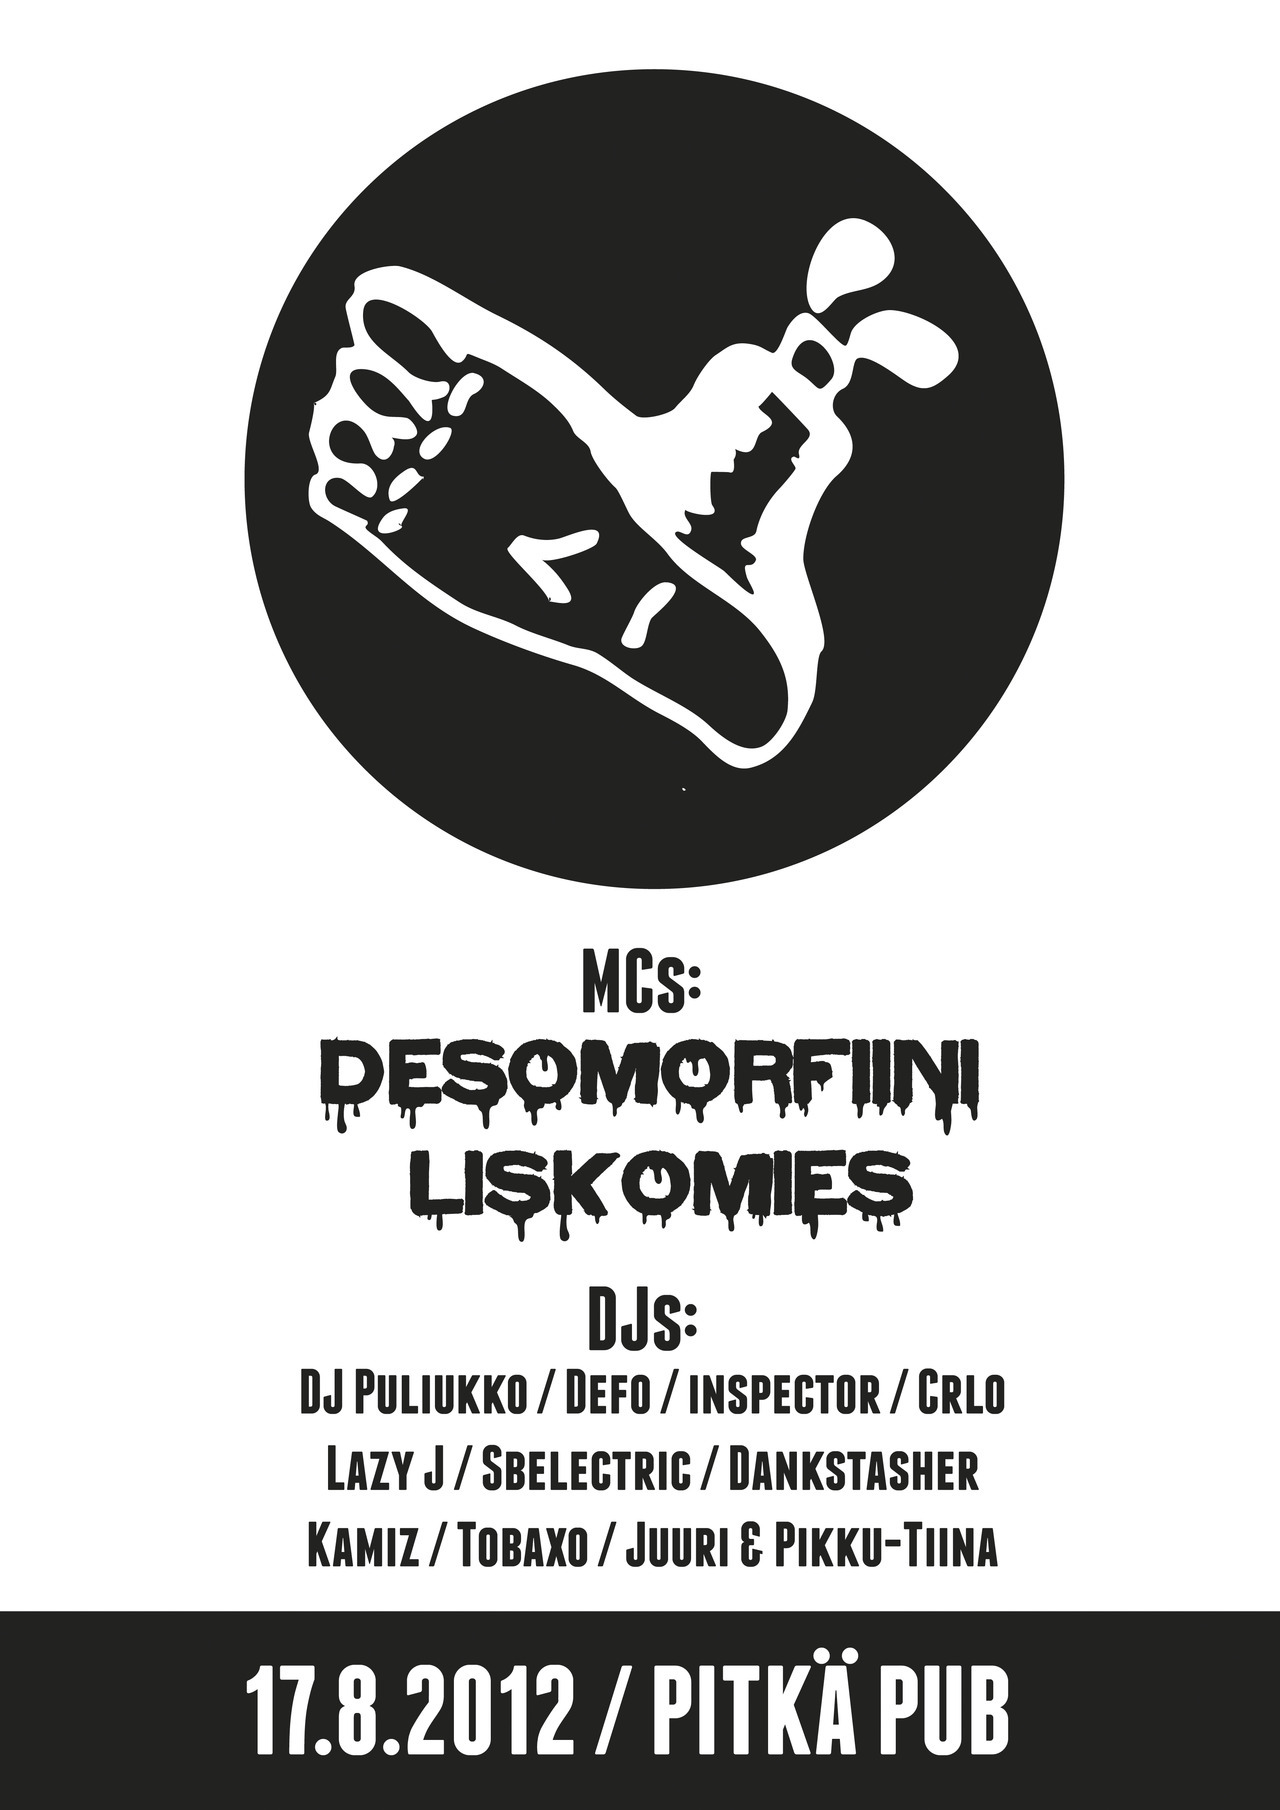 a poster for satama sessions. desomorfiini & liskomies live + a lot of djs!  adobe illustrator.